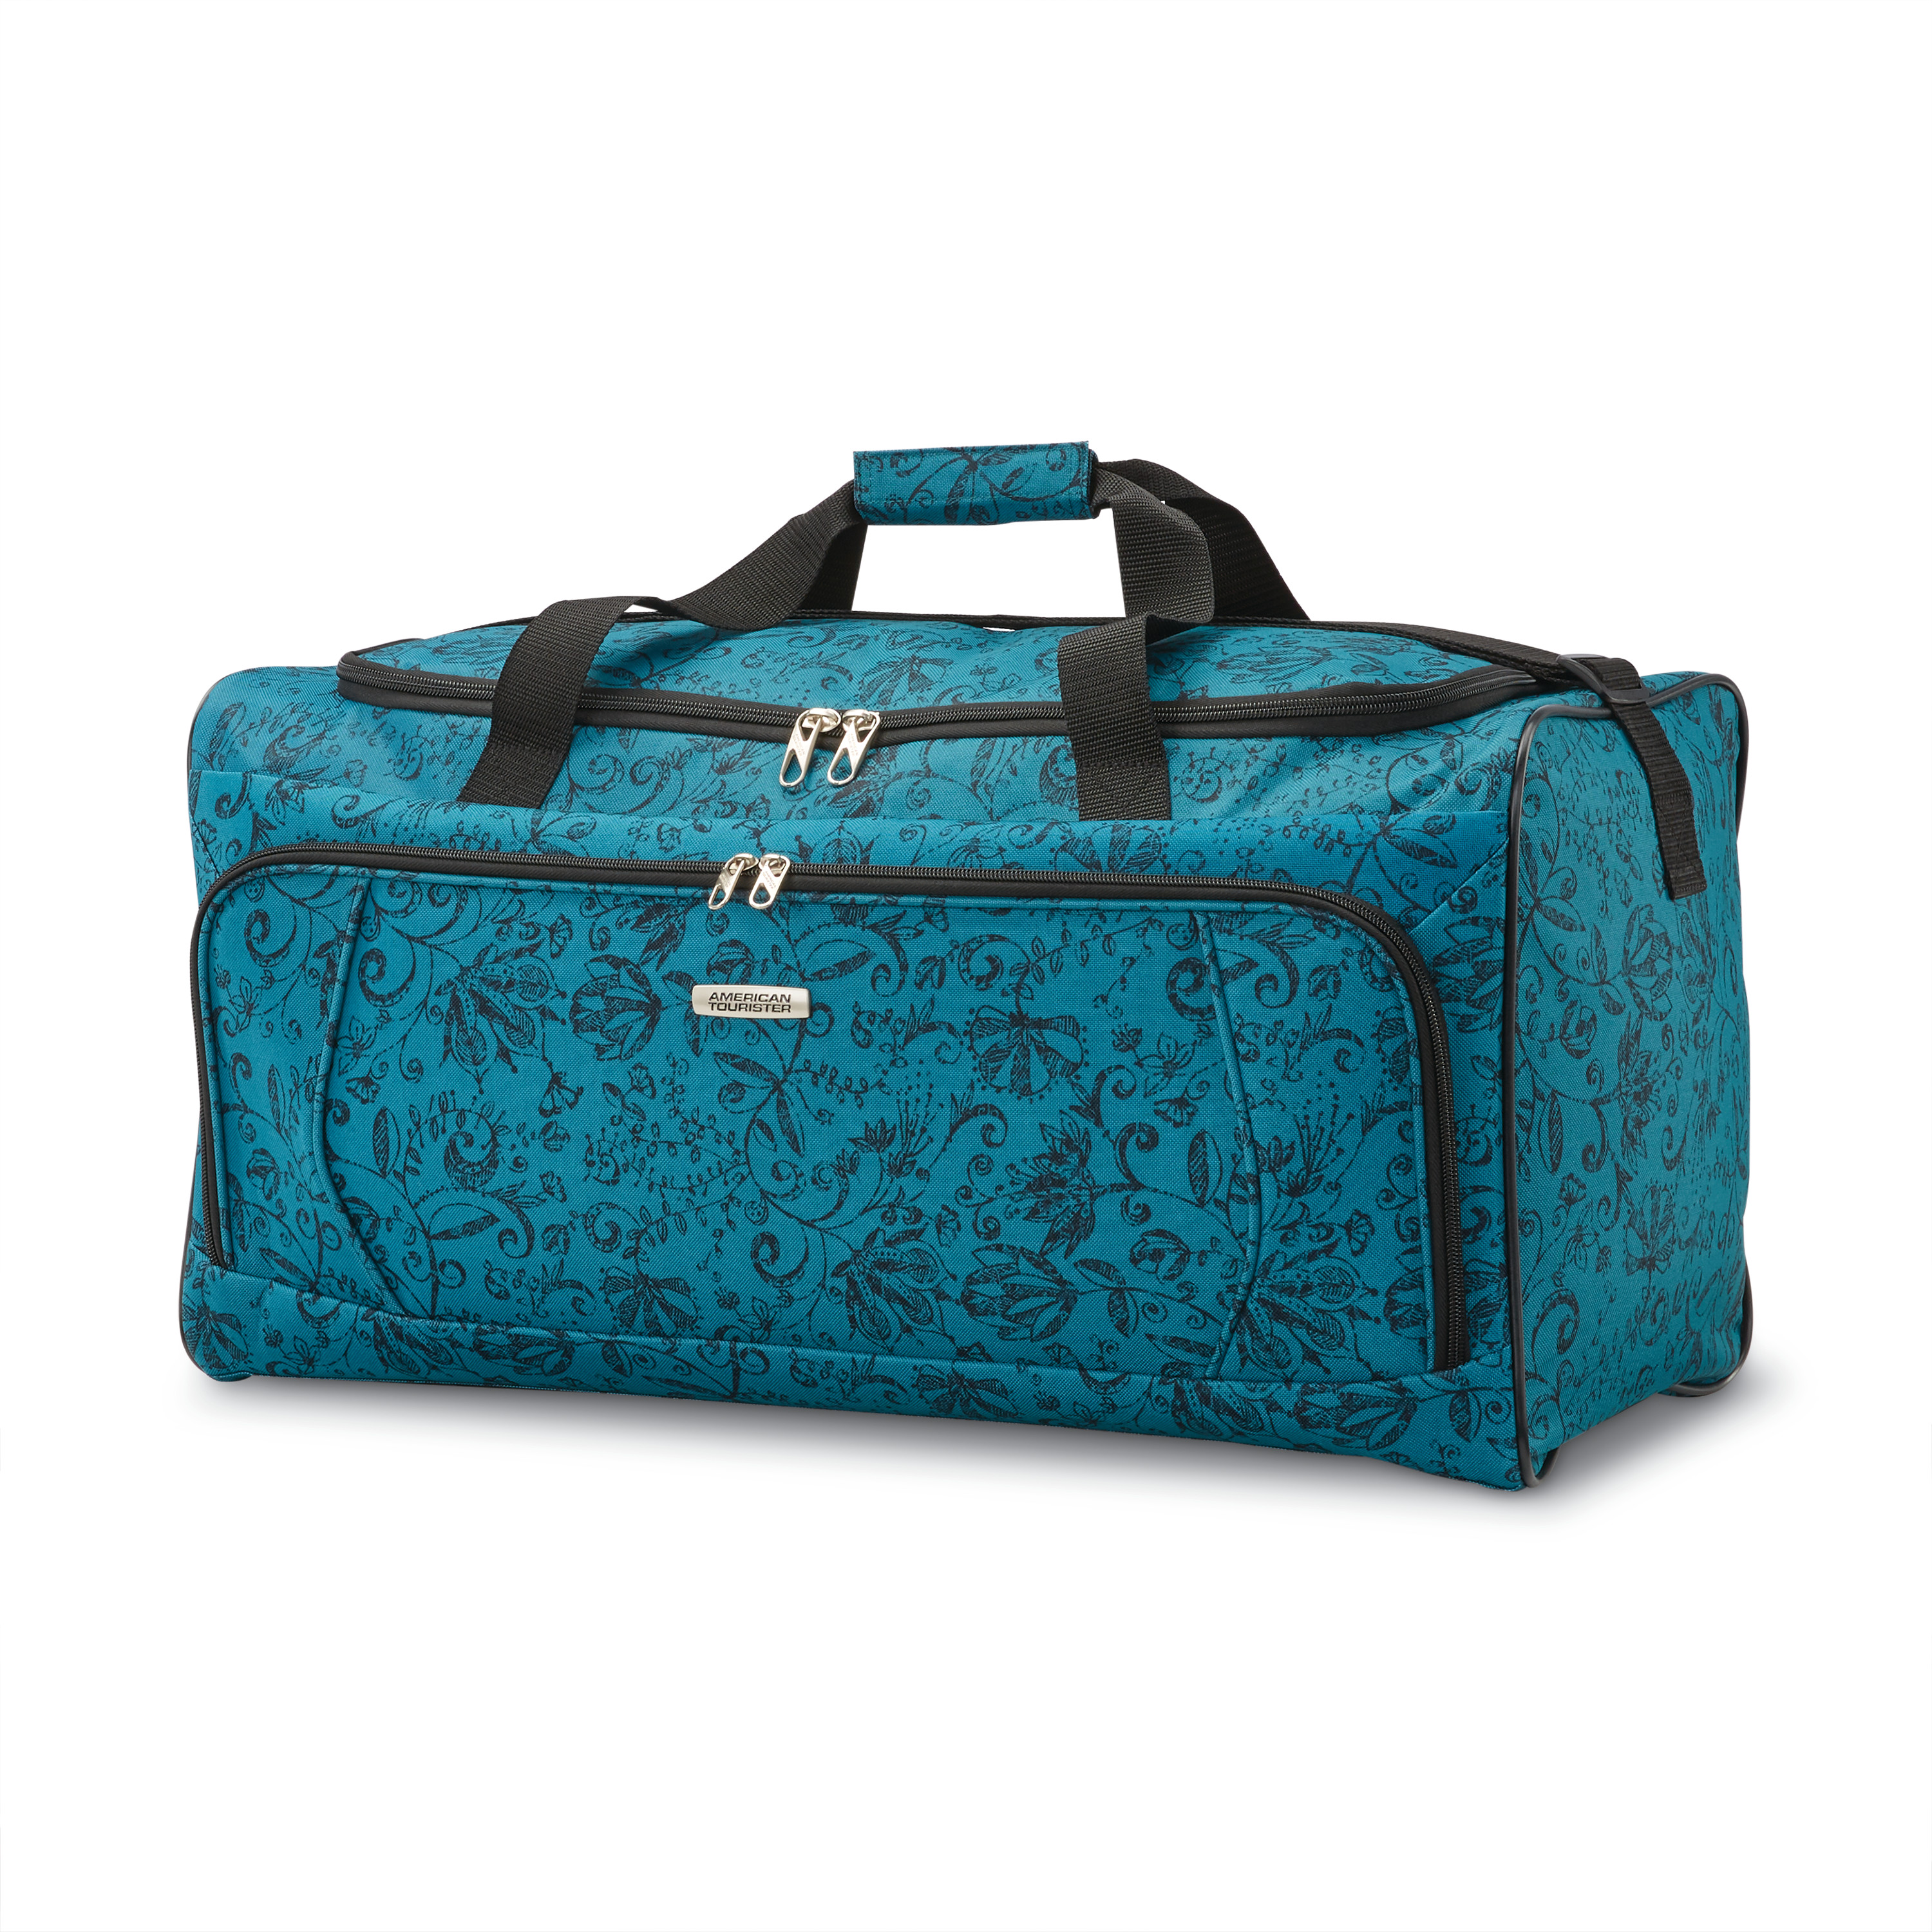 American-Tourister-Riverbend-4-Piece-Set thumbnail 18